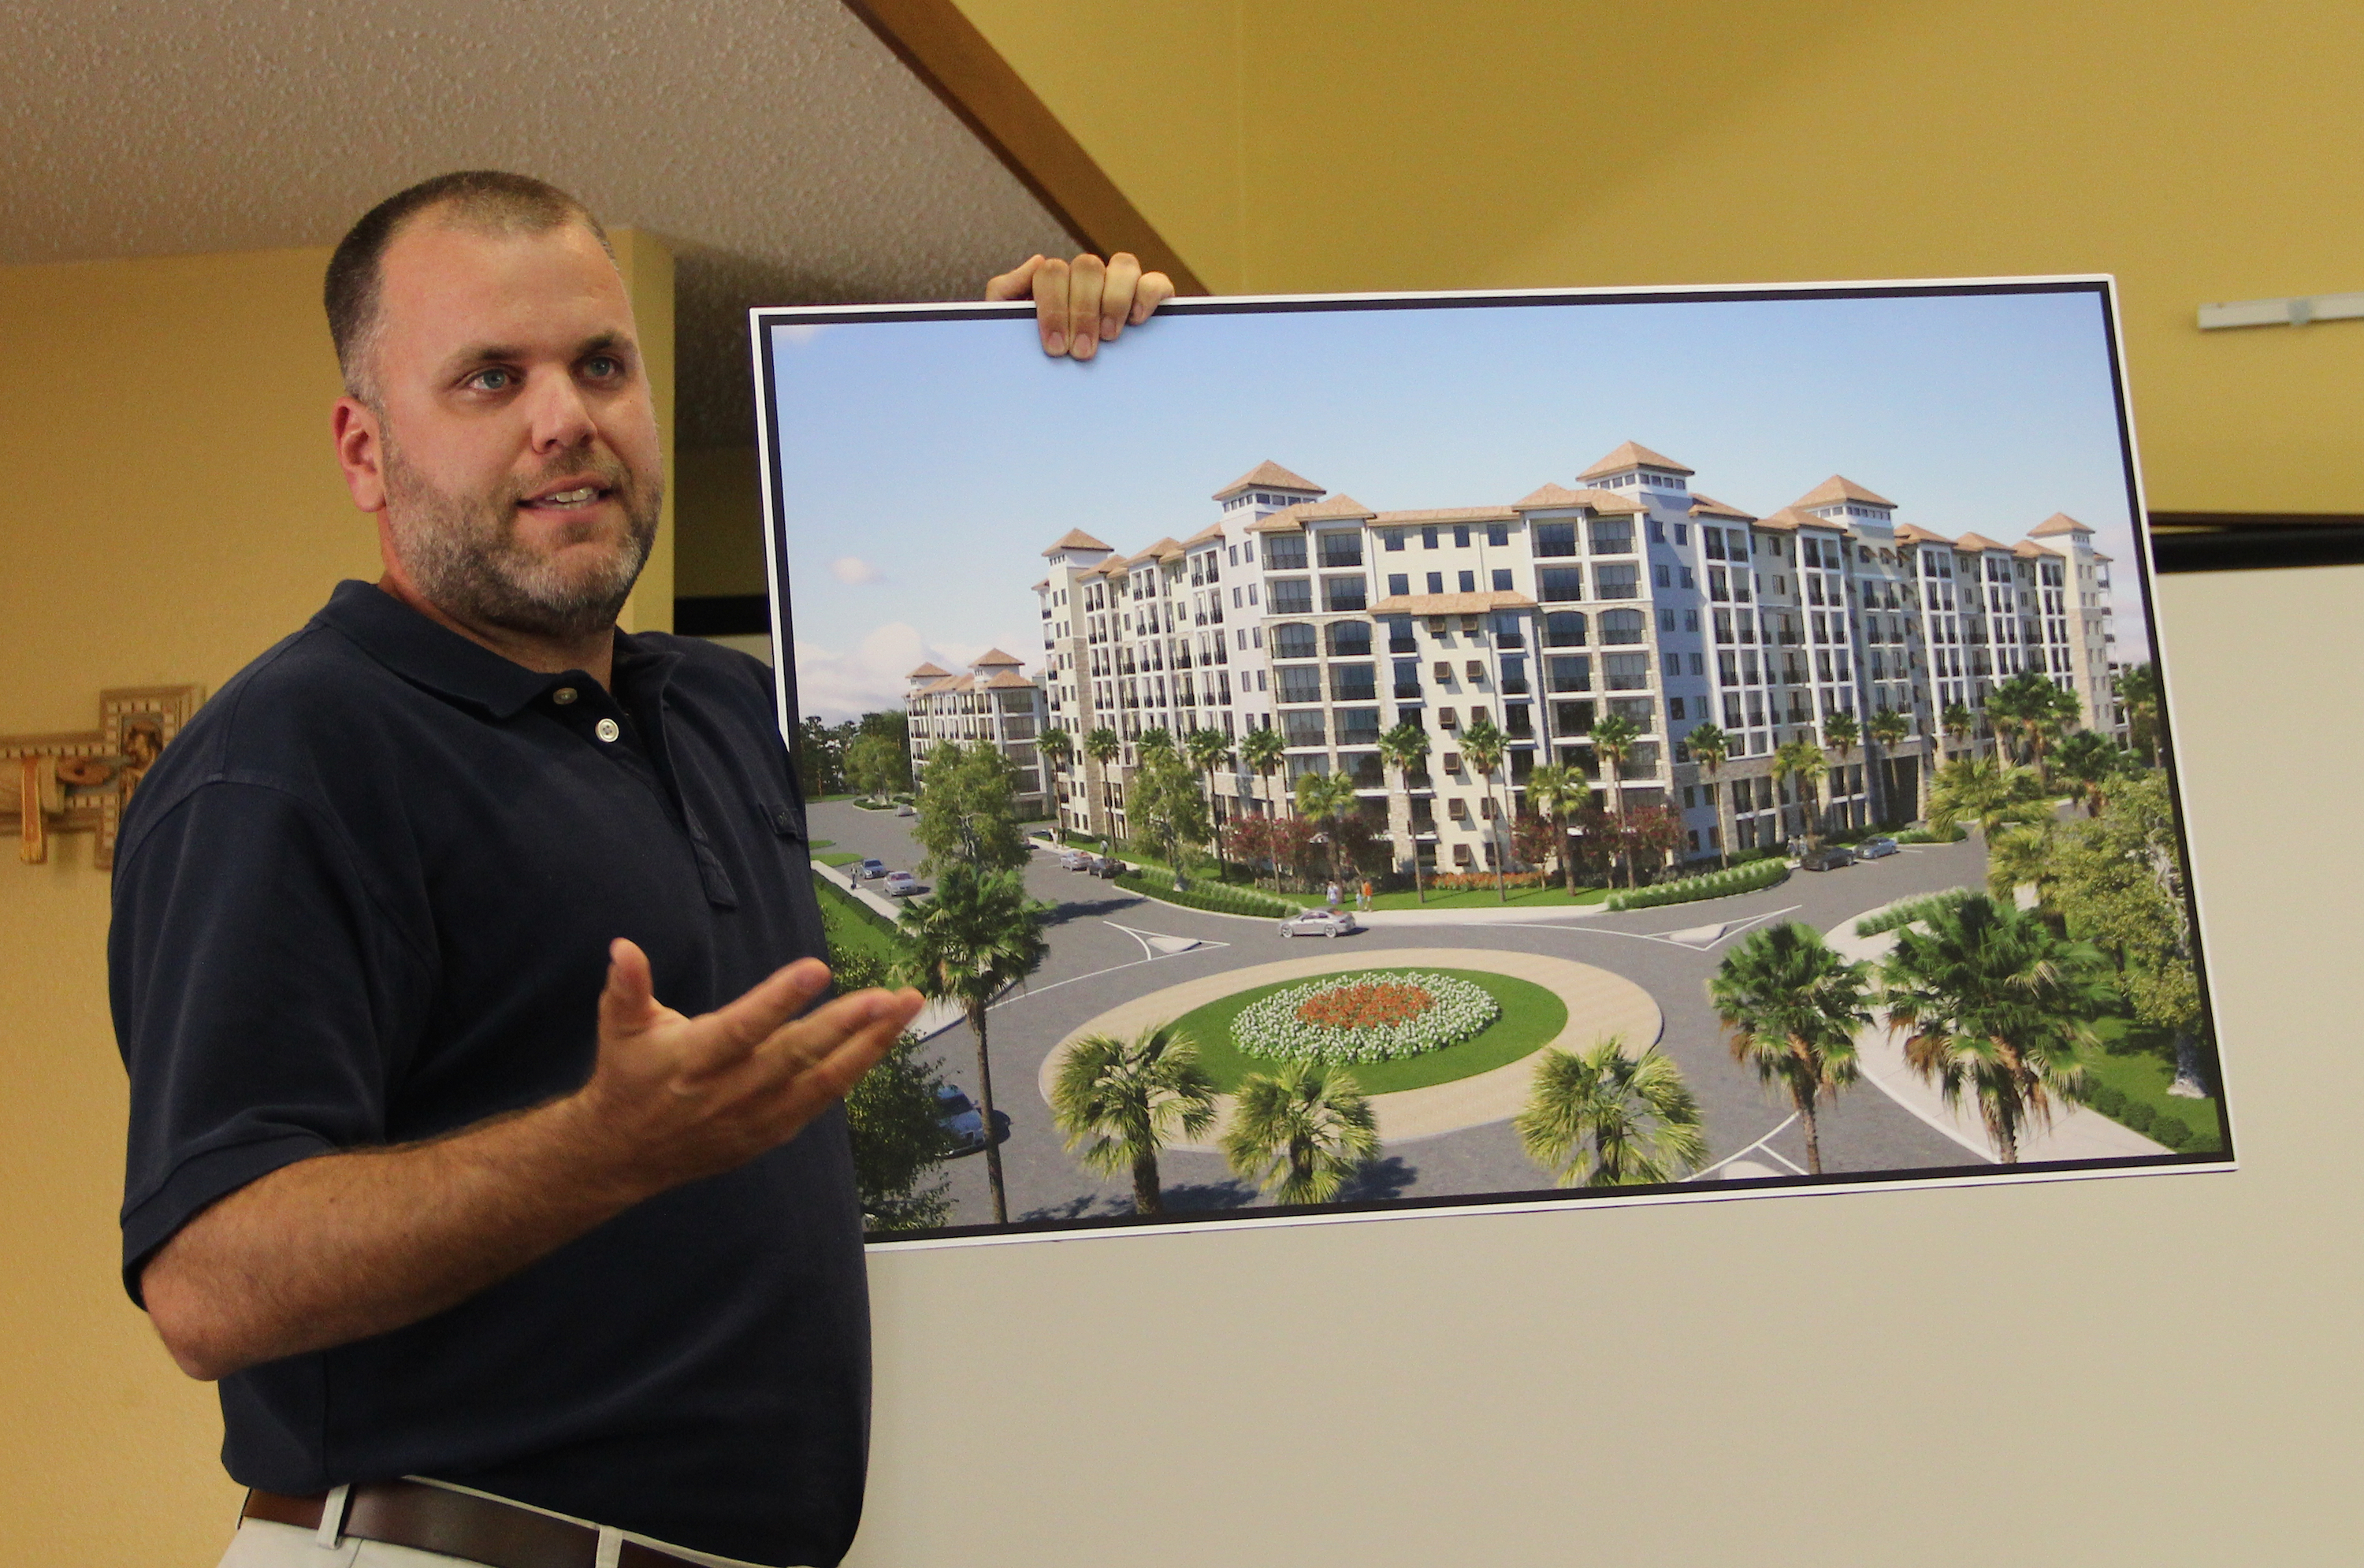 FDOT staff expresses serious concerns about proposed Siesta Promenade project